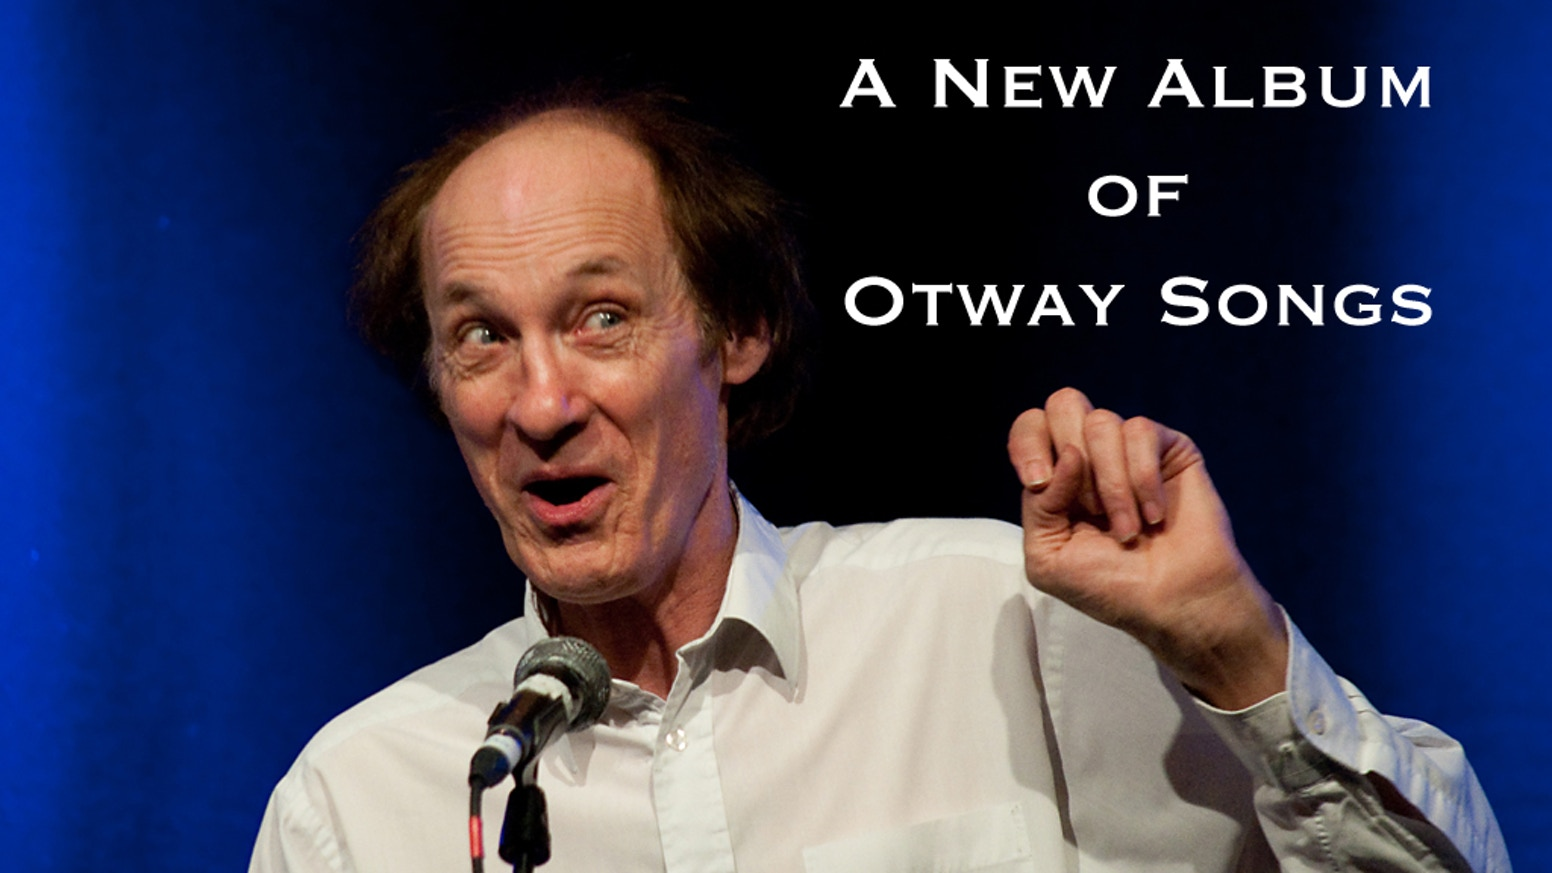 It's been more than ten years since John Otway recorded an album of new songs. Is the world ready for a new one...? Turns out it is!